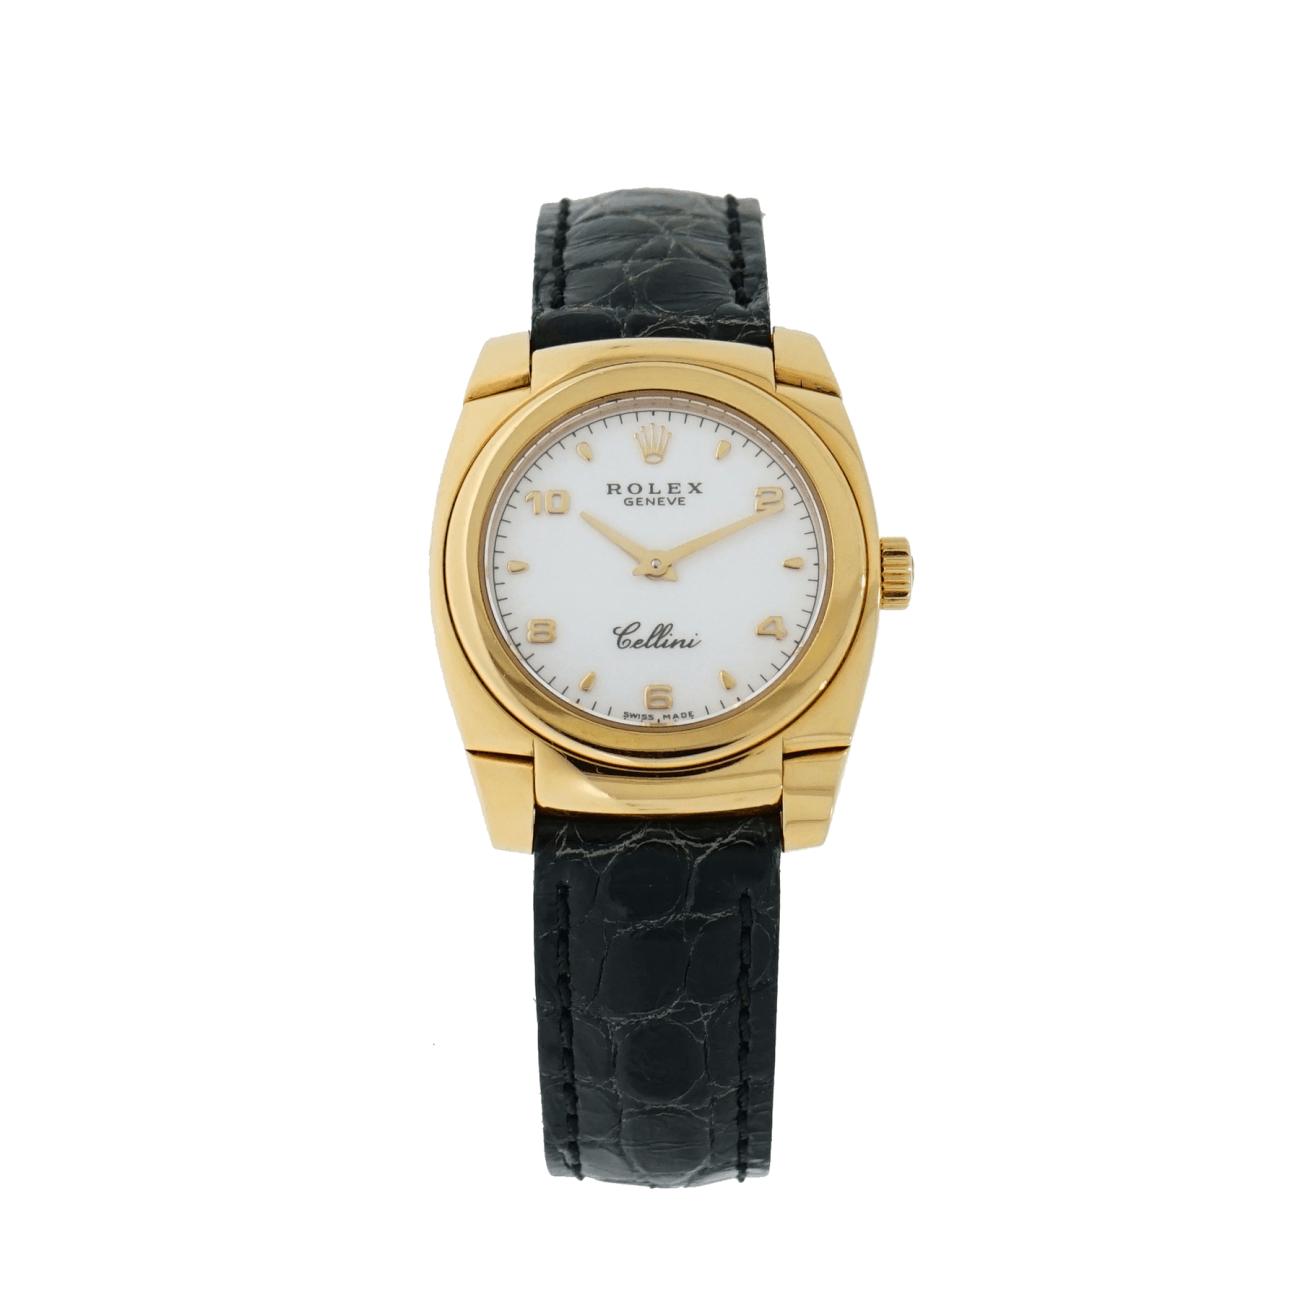 Pre-Owned Rolex Watches - Cellini Cestello | Manfredi Jewels